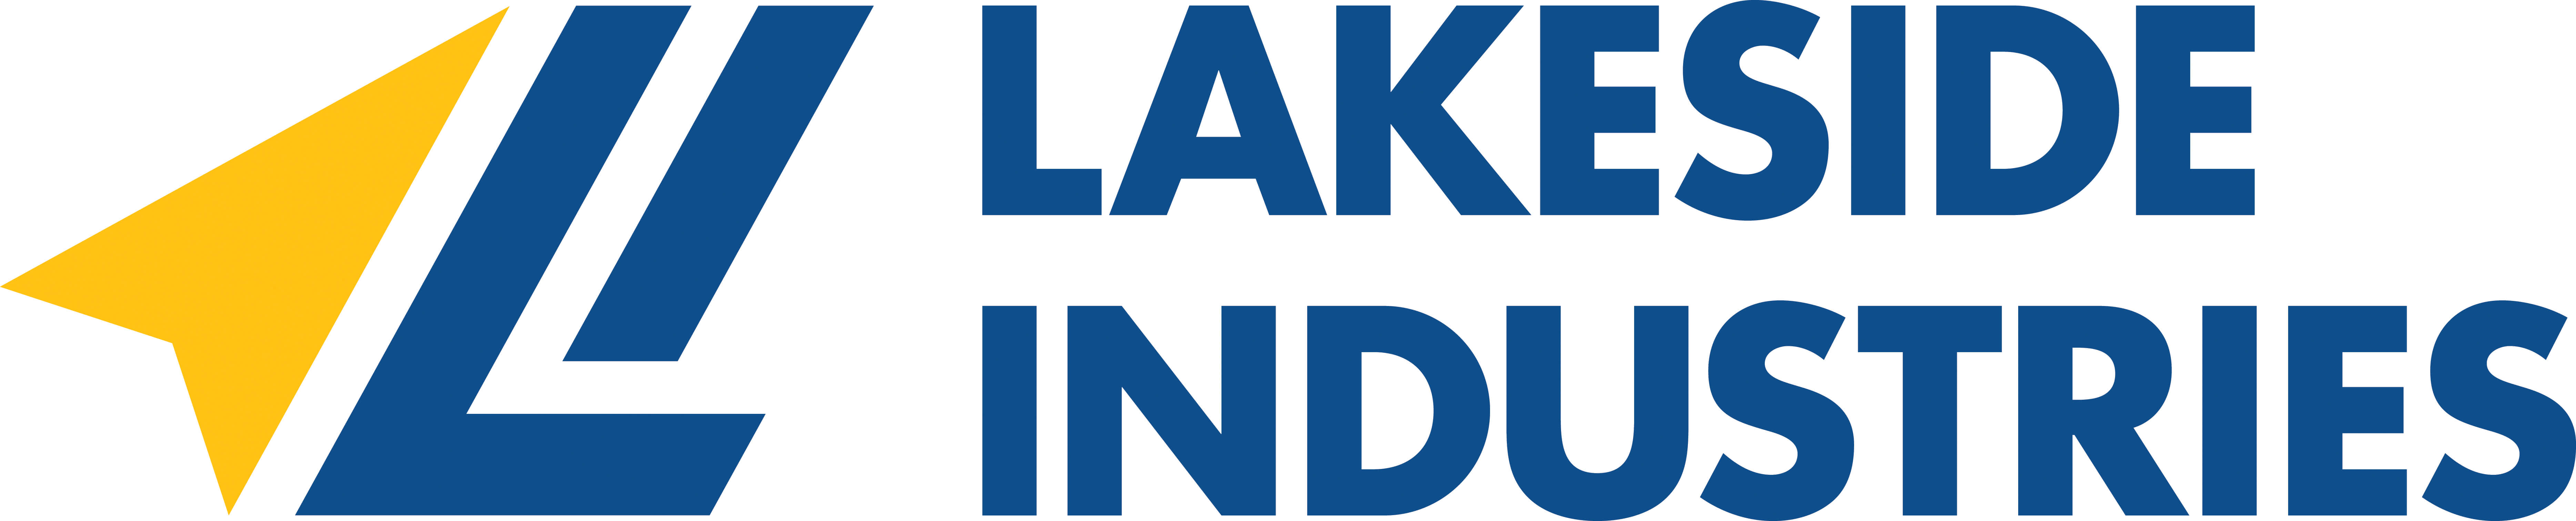 Lakeside Industries